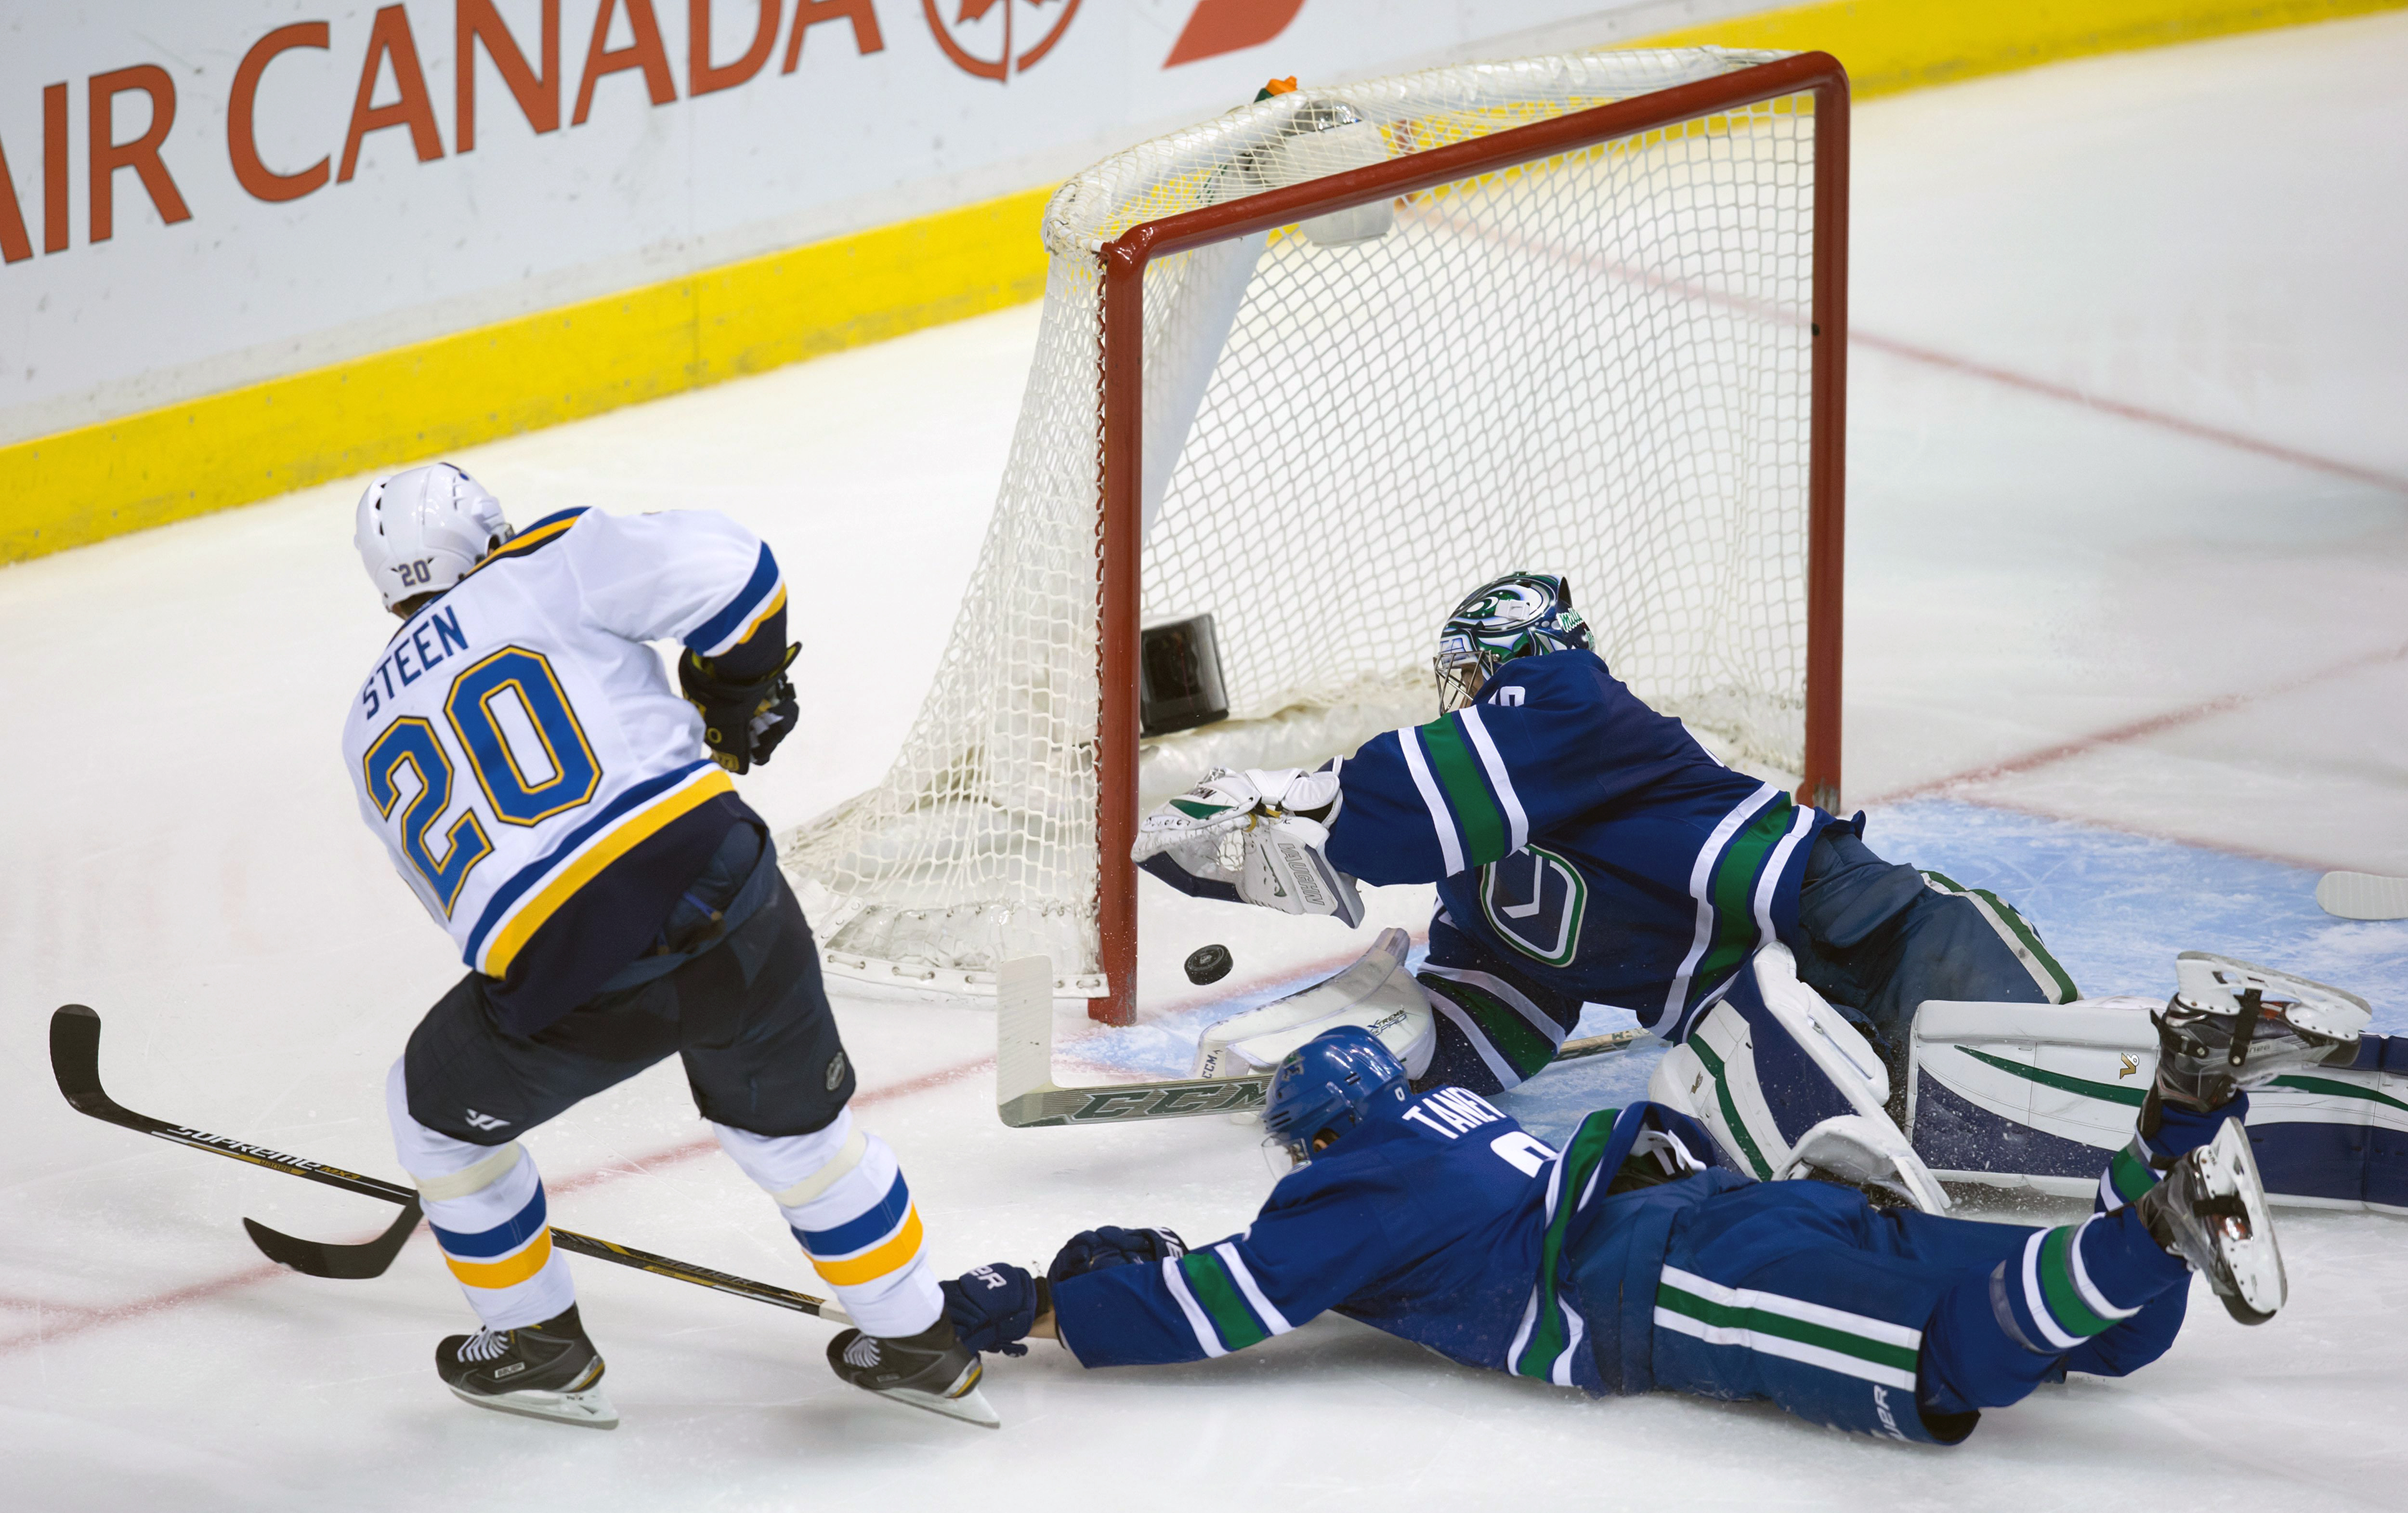 St. Louis Blues' Alexander Steen, left, (20) scores past Vancouver Canucks' goalie Ryan Miller, top right, and a diving Chris Tanev during the second period of an NHL hockey game in Vancouver, British Columbia, Friday, Oct. 16, 2015. (Darryl Dyck/The Cana